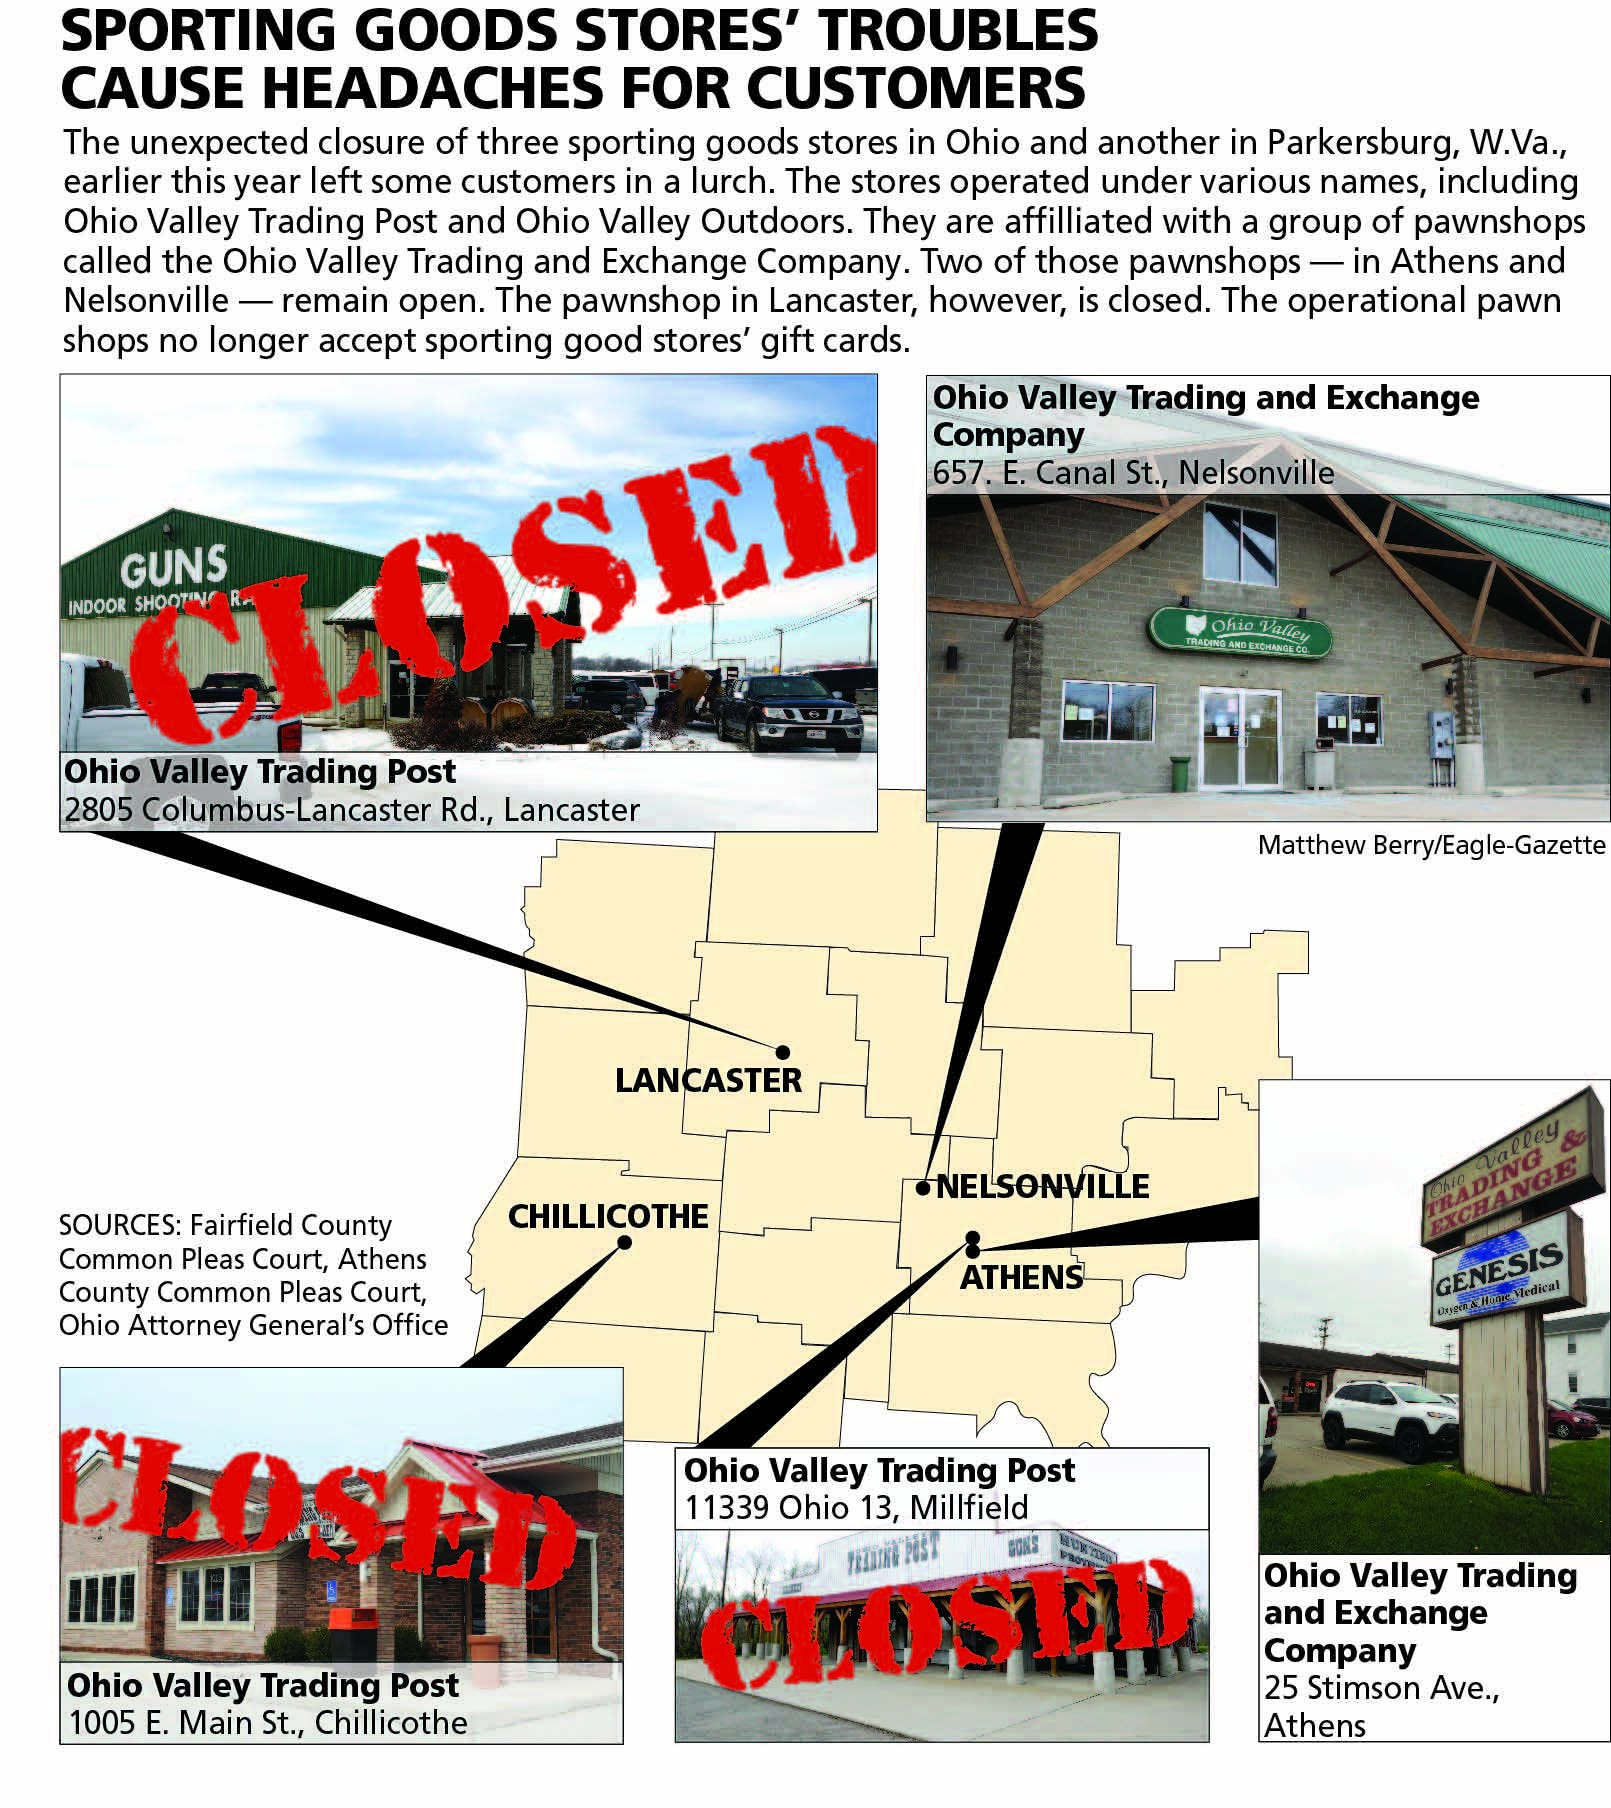 Former customers out in the cold after Ohio Valley Outdoors closure